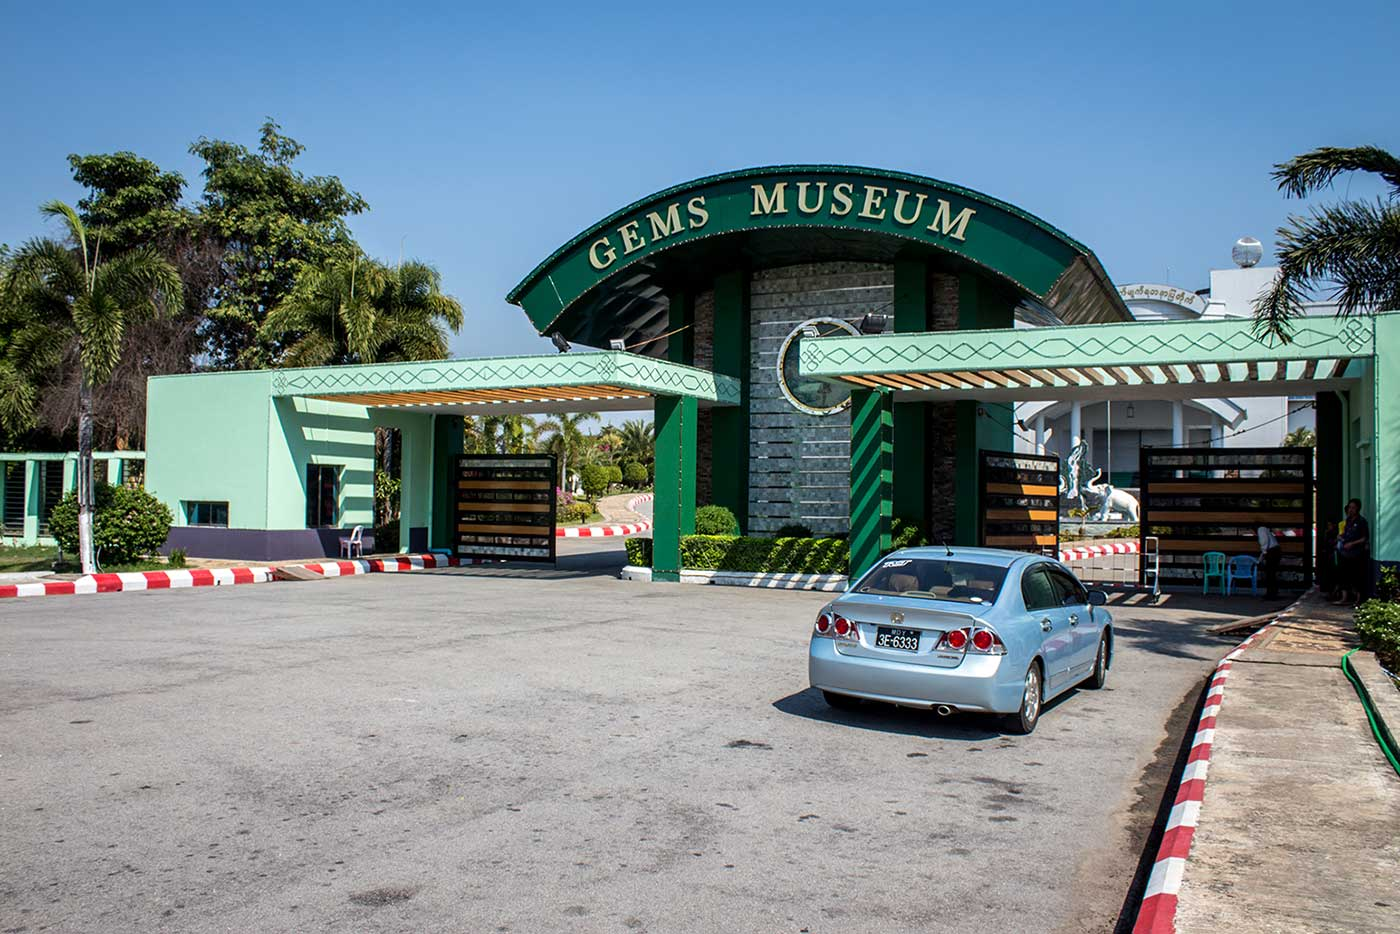 The 'Gems Museum,' located in Zabuthri Township, Naypyidaw.